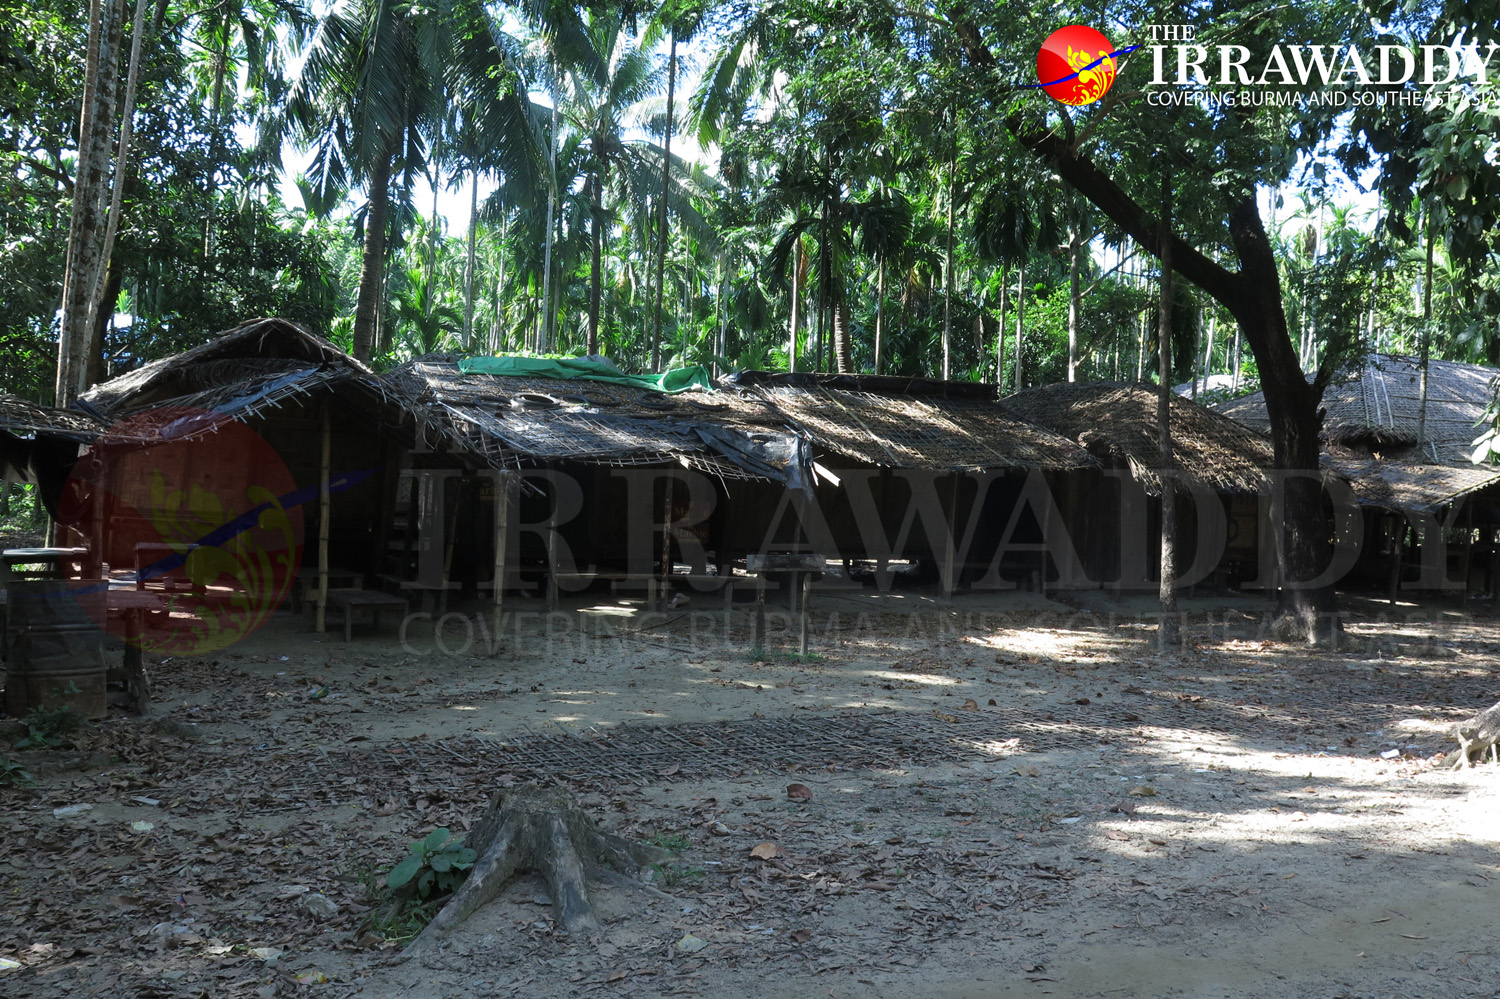 Closed shops in Maung Hna Ma, a Muslim village in Maungdaw. (Photo: Moe Myint / The Irrawaddy)